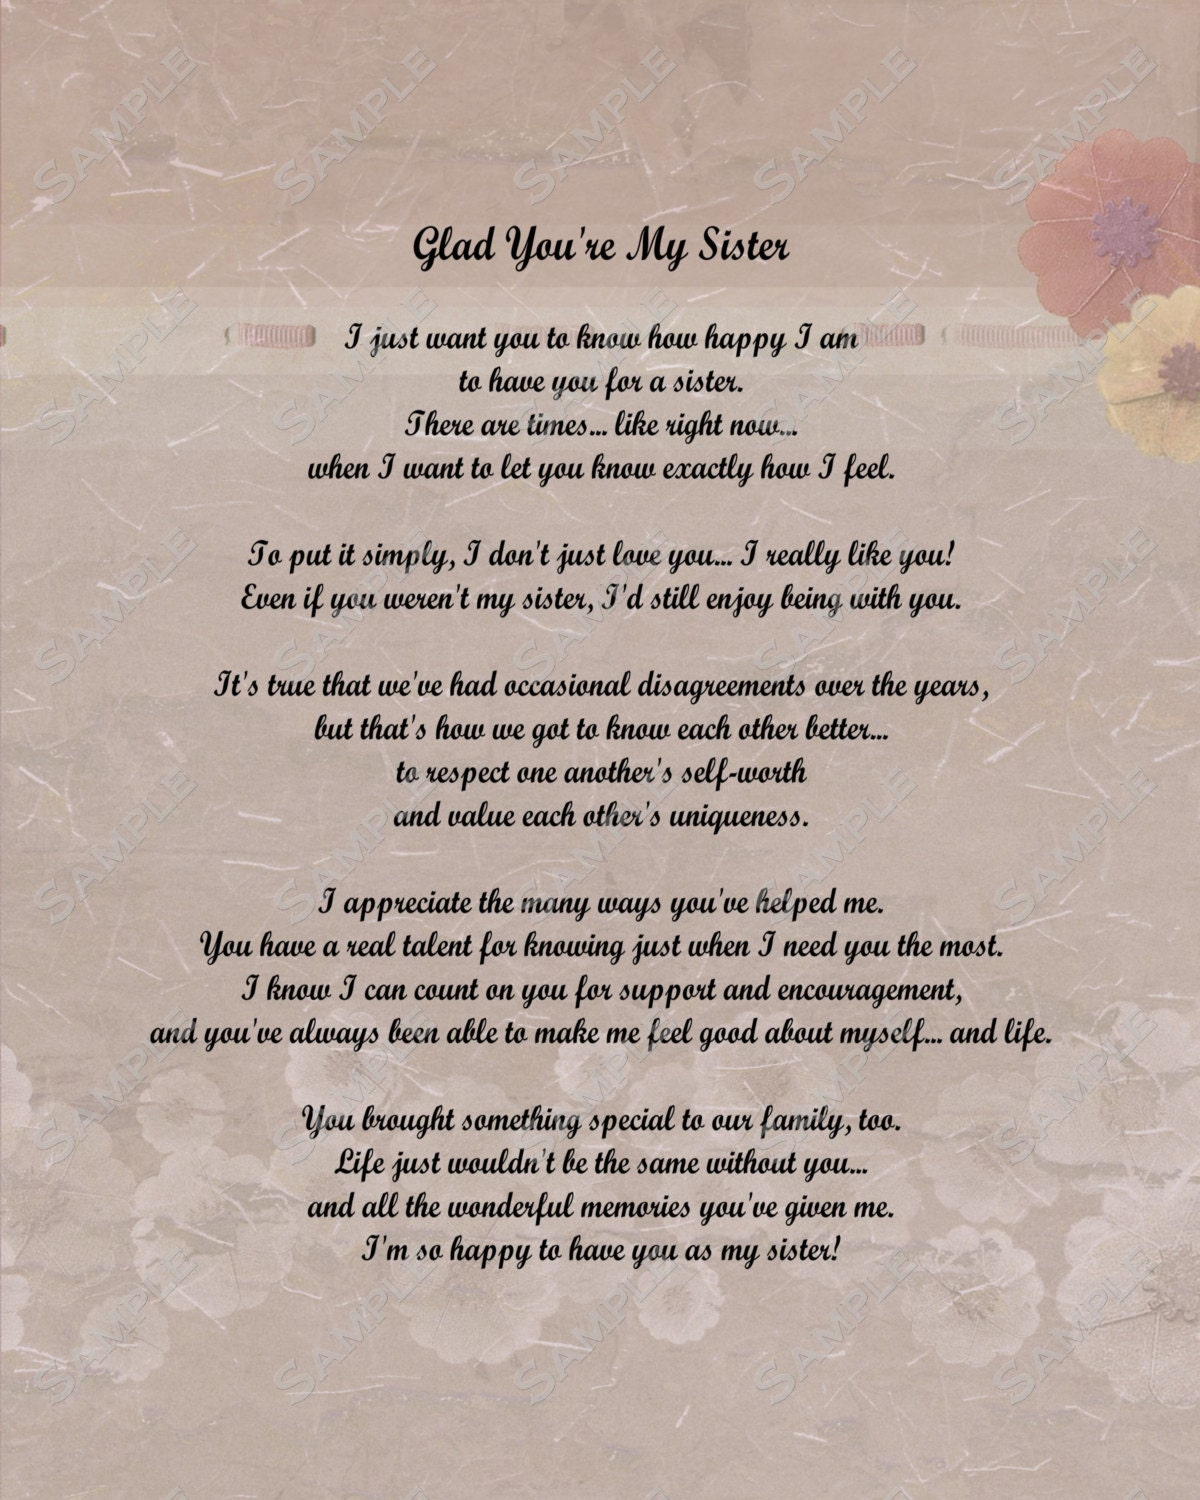 older sister poems that make you cry - photo #10